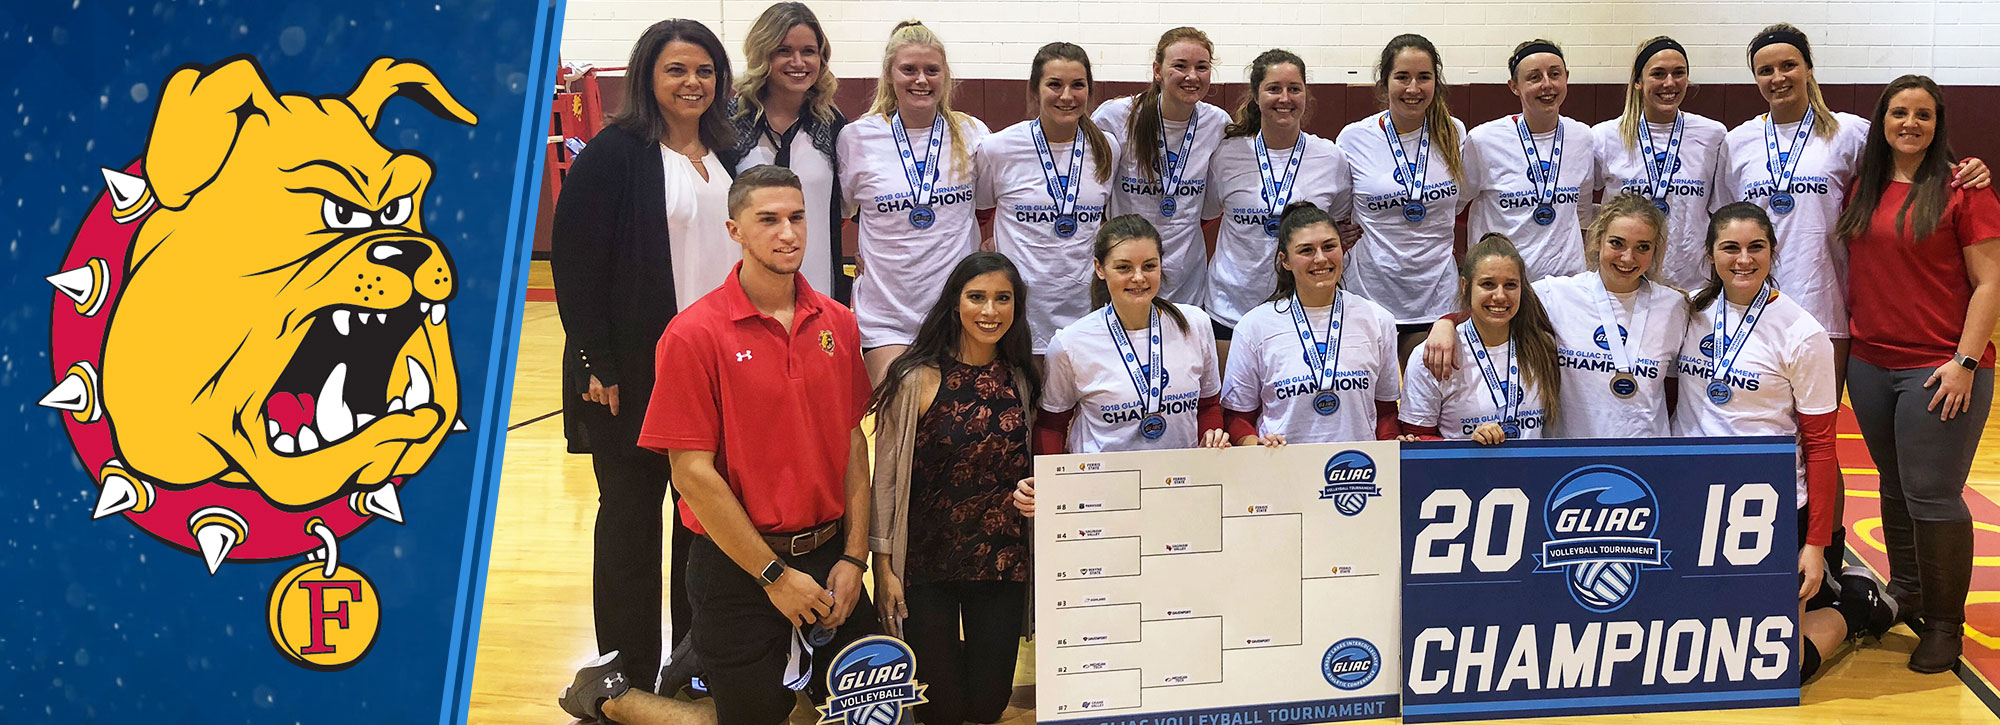 Ferris State Sweeps Davenport to Win Fifth Consecutive GLIAC Volleyball Tournament Title